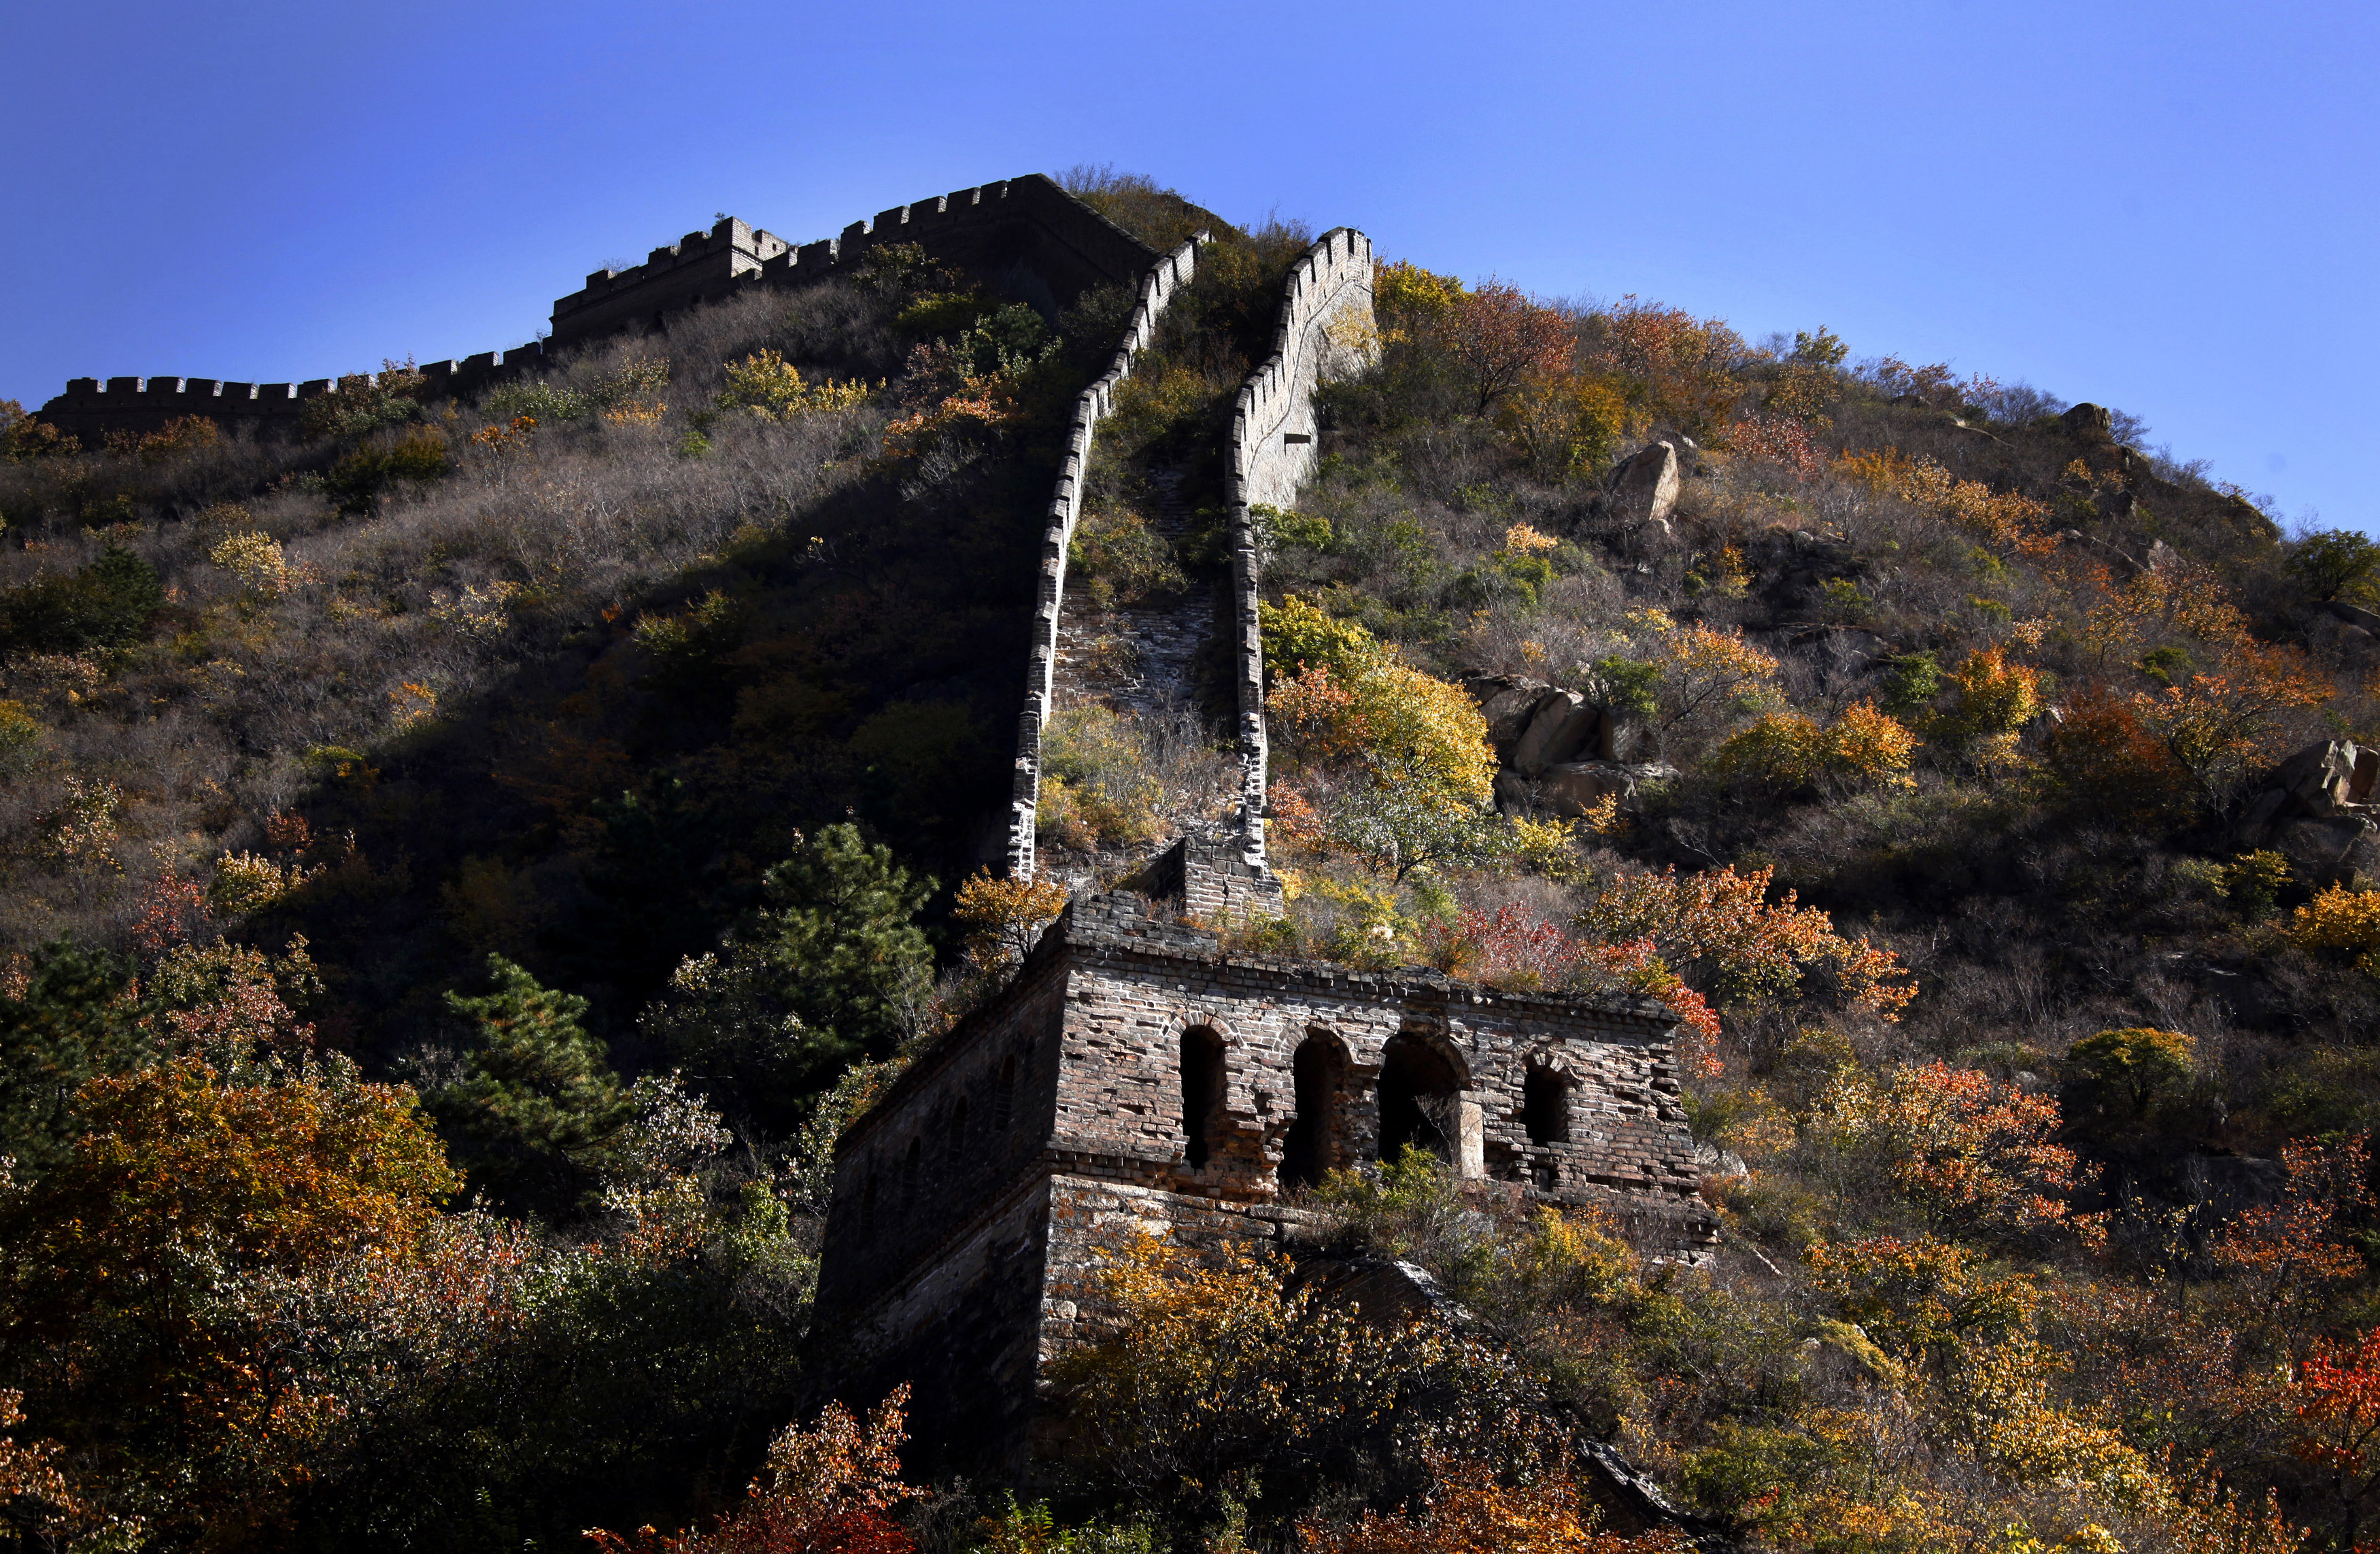 The Great Wall of China Is Falling Down Experts Warn Culture